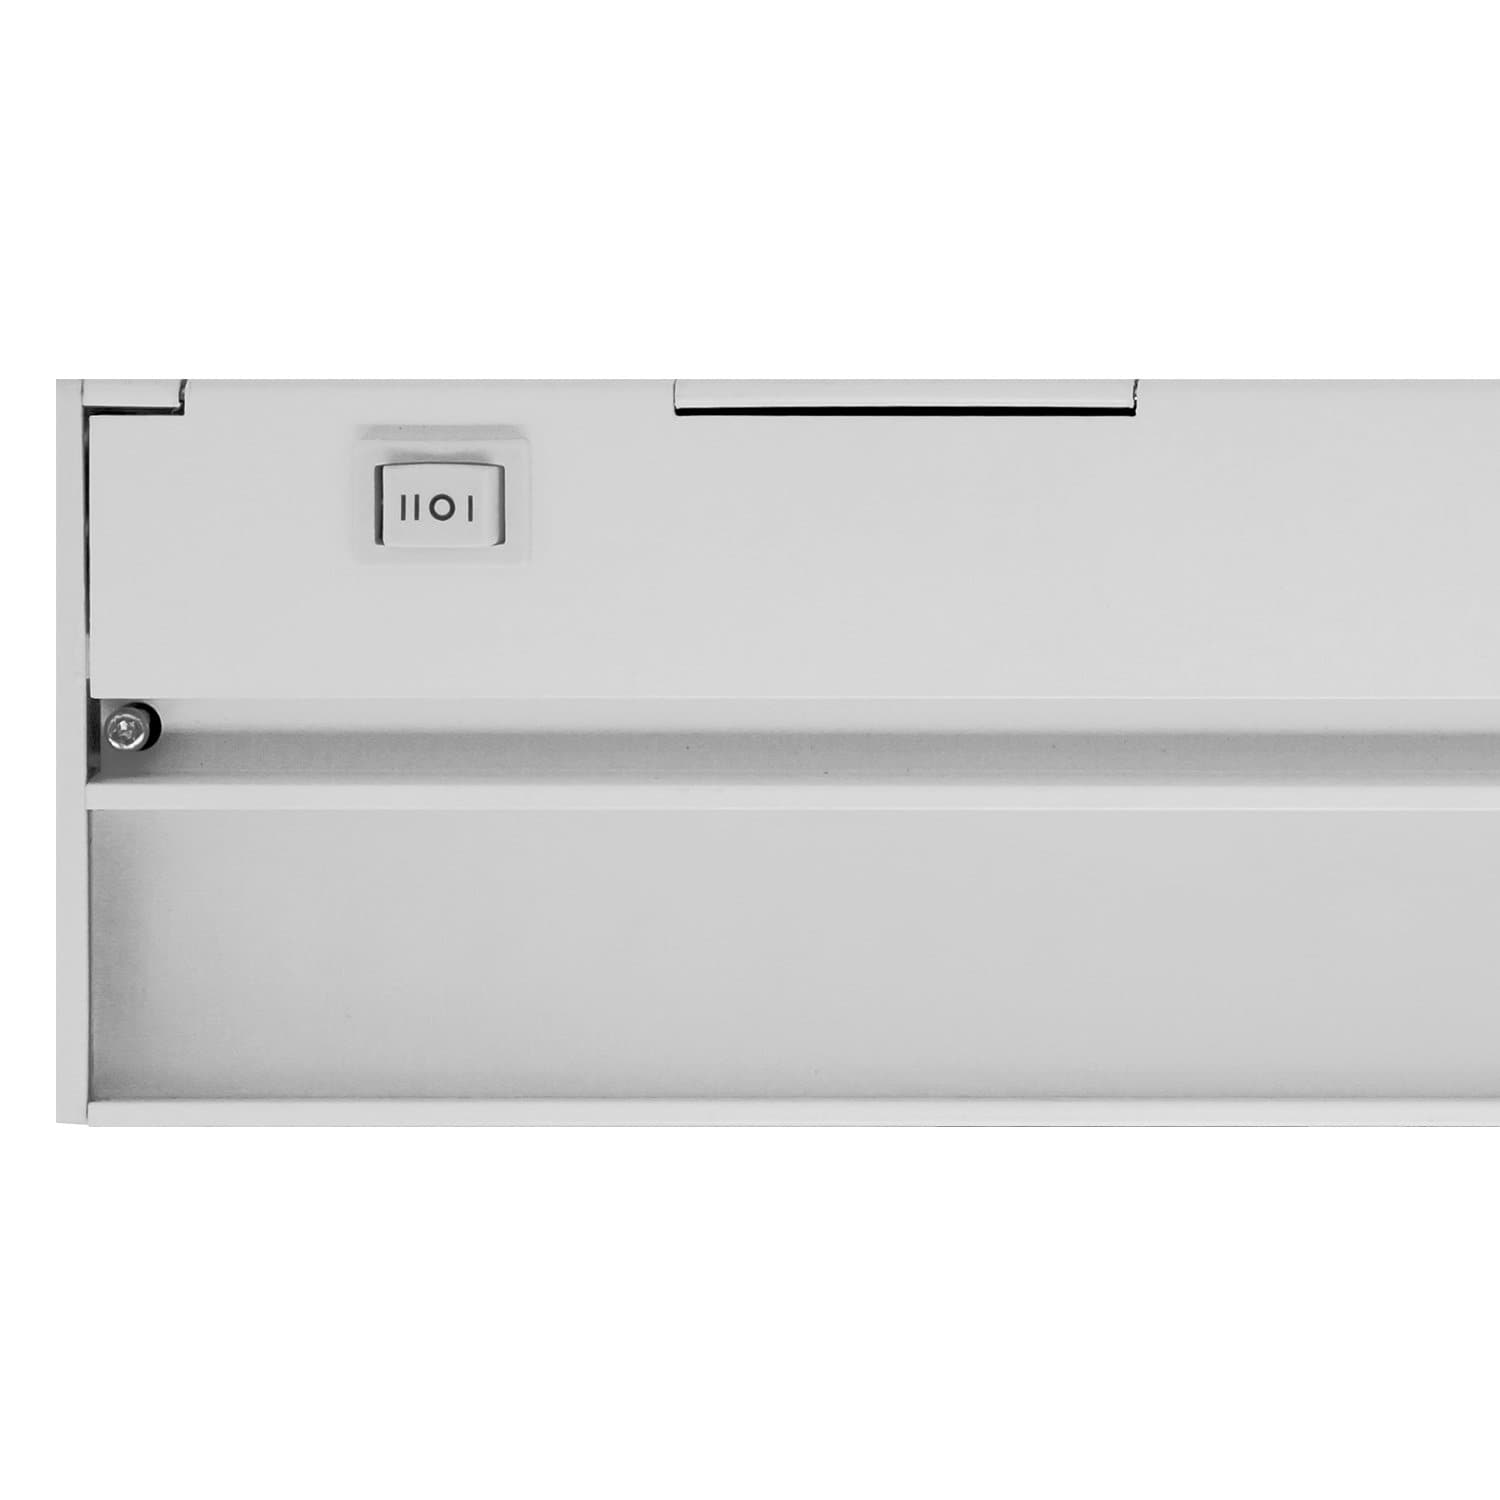 NICOR Slim 21 inch Dimmable LED Under-Cabinet Lighting Fixture White Finish